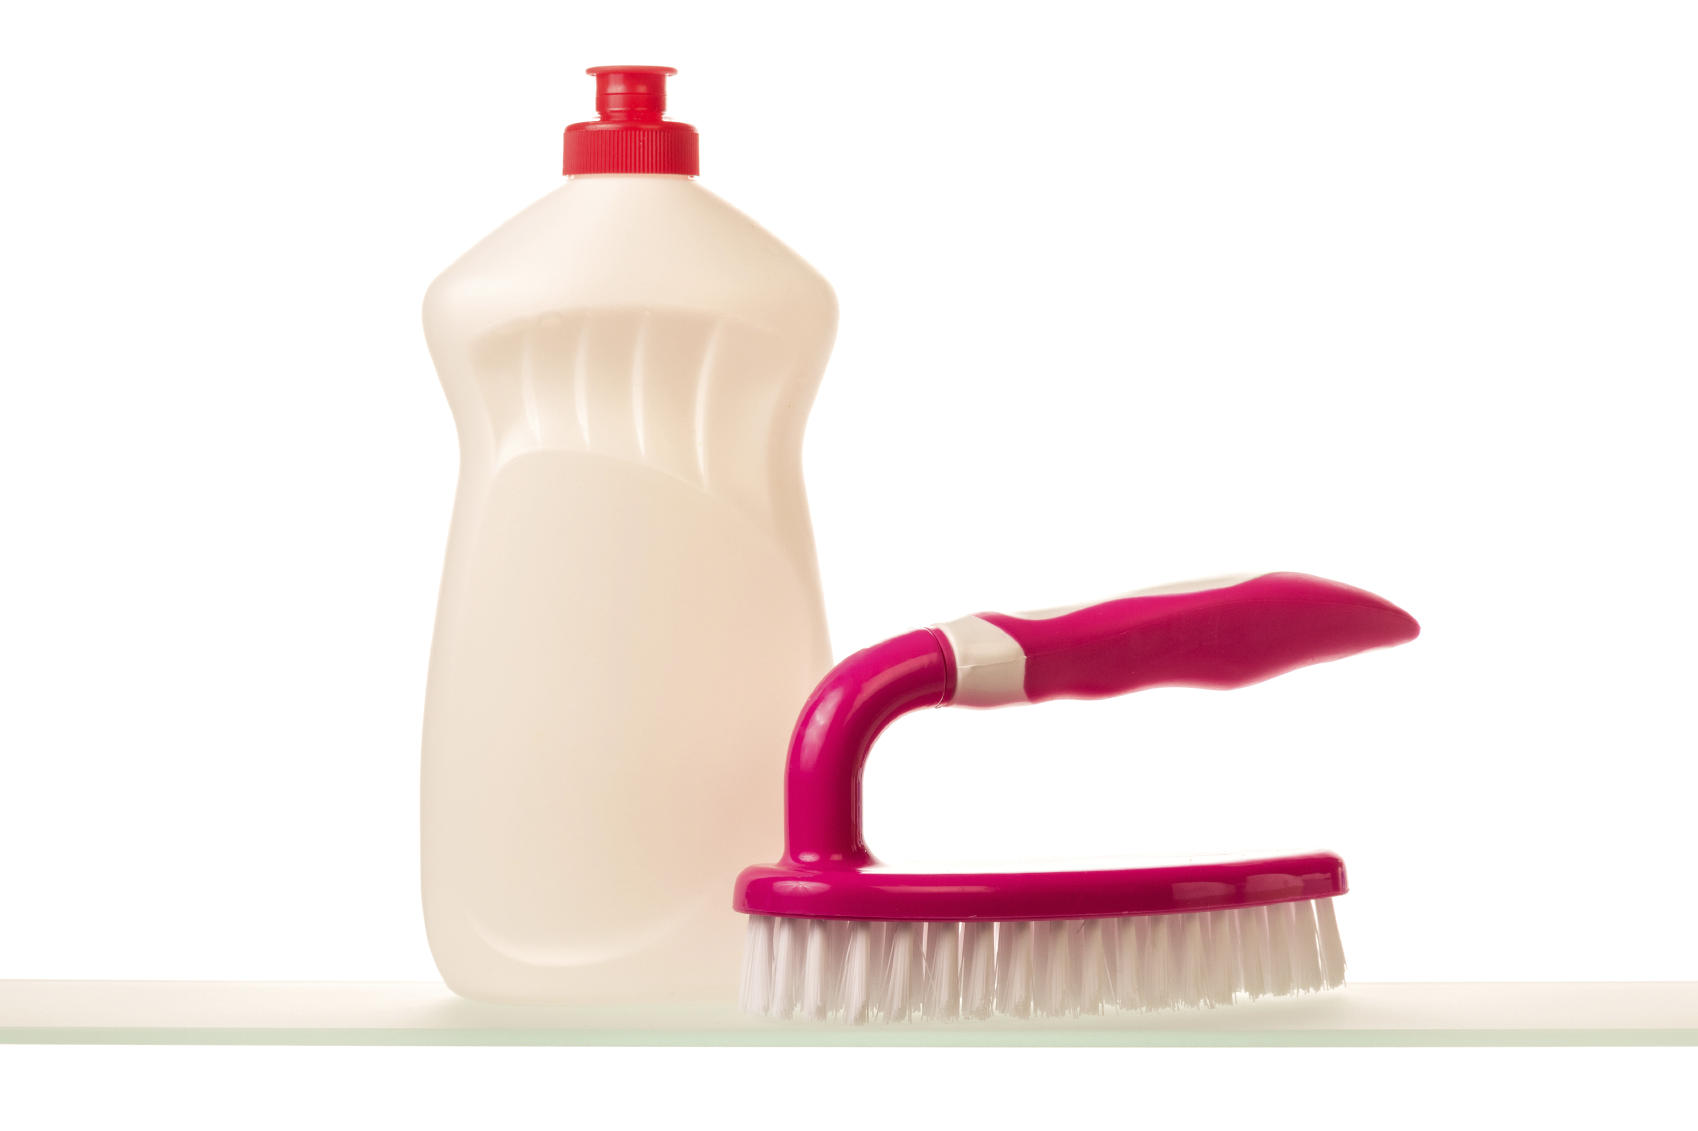 Cleaning product and brush